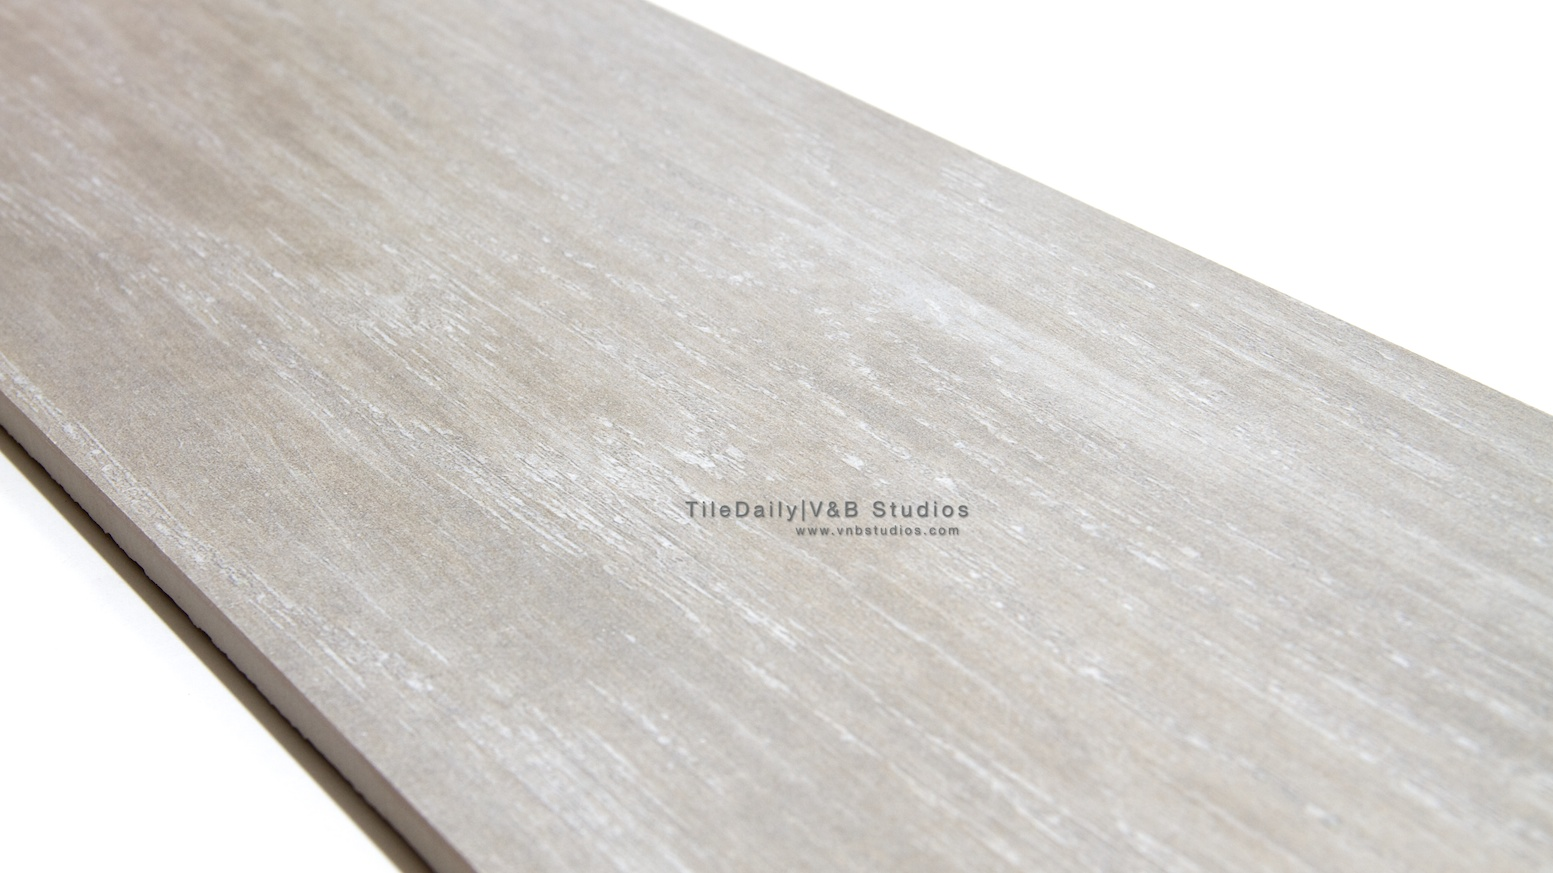 Grey Wood Tile : ... 11, 2012 at 1553 × 873 in Classic Series Wood Porcelain, Light Colors